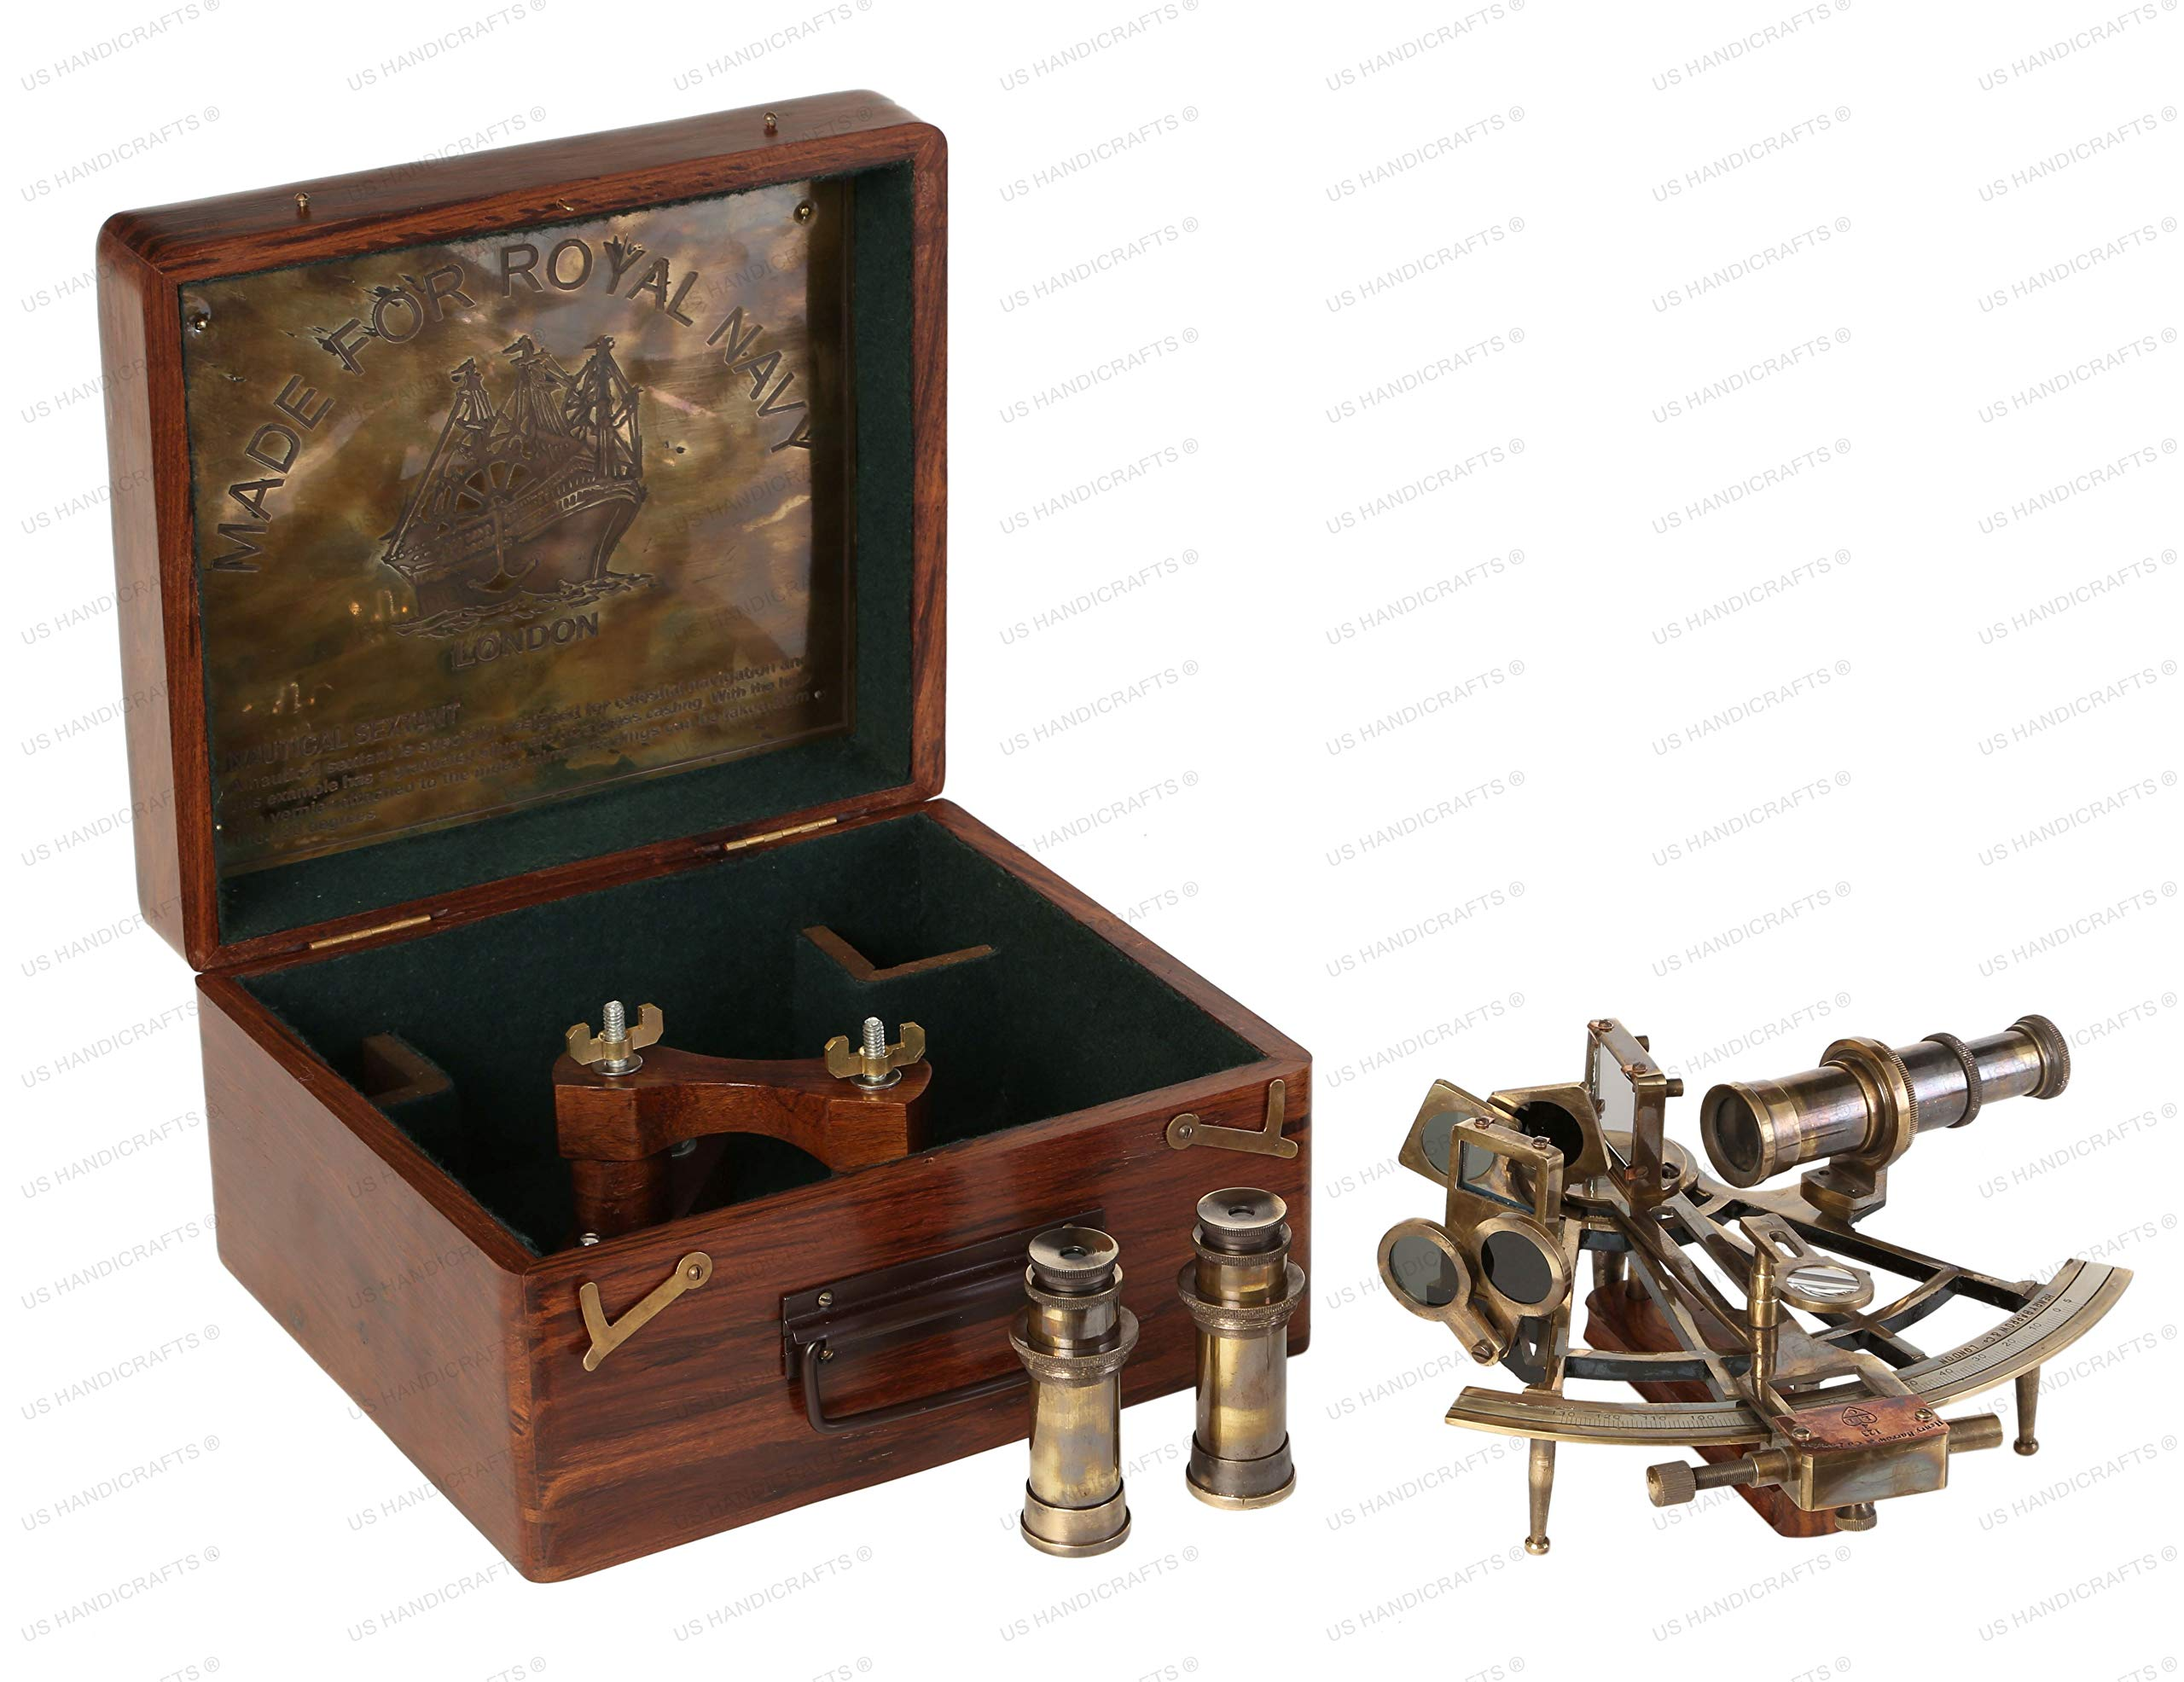 8 Inch Maritime Antiques Marine Captain Sextant - Brass Nautical Sextant by US HANDICRAFTS